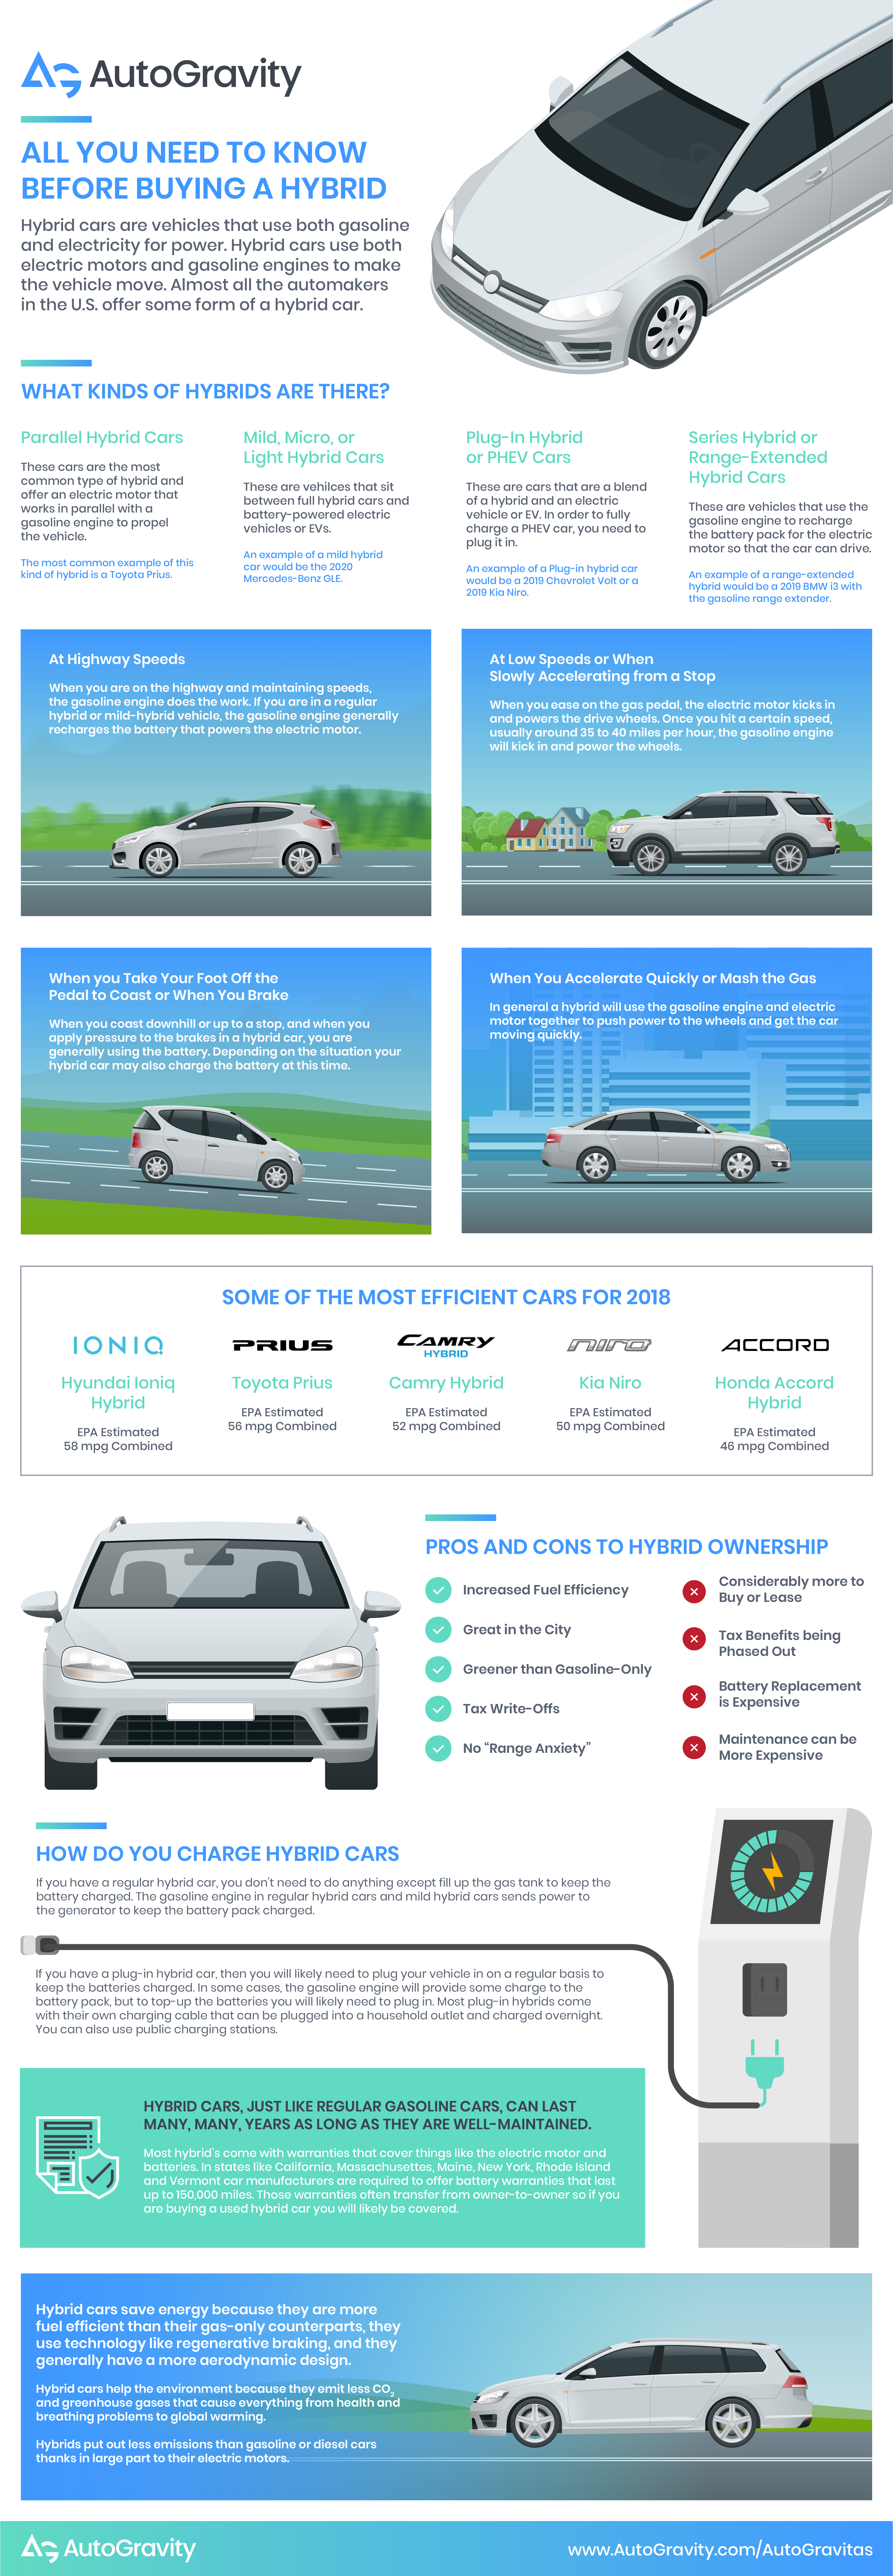 Hybrid Cars – All You Need to Know Before Buying One - AutoGravity